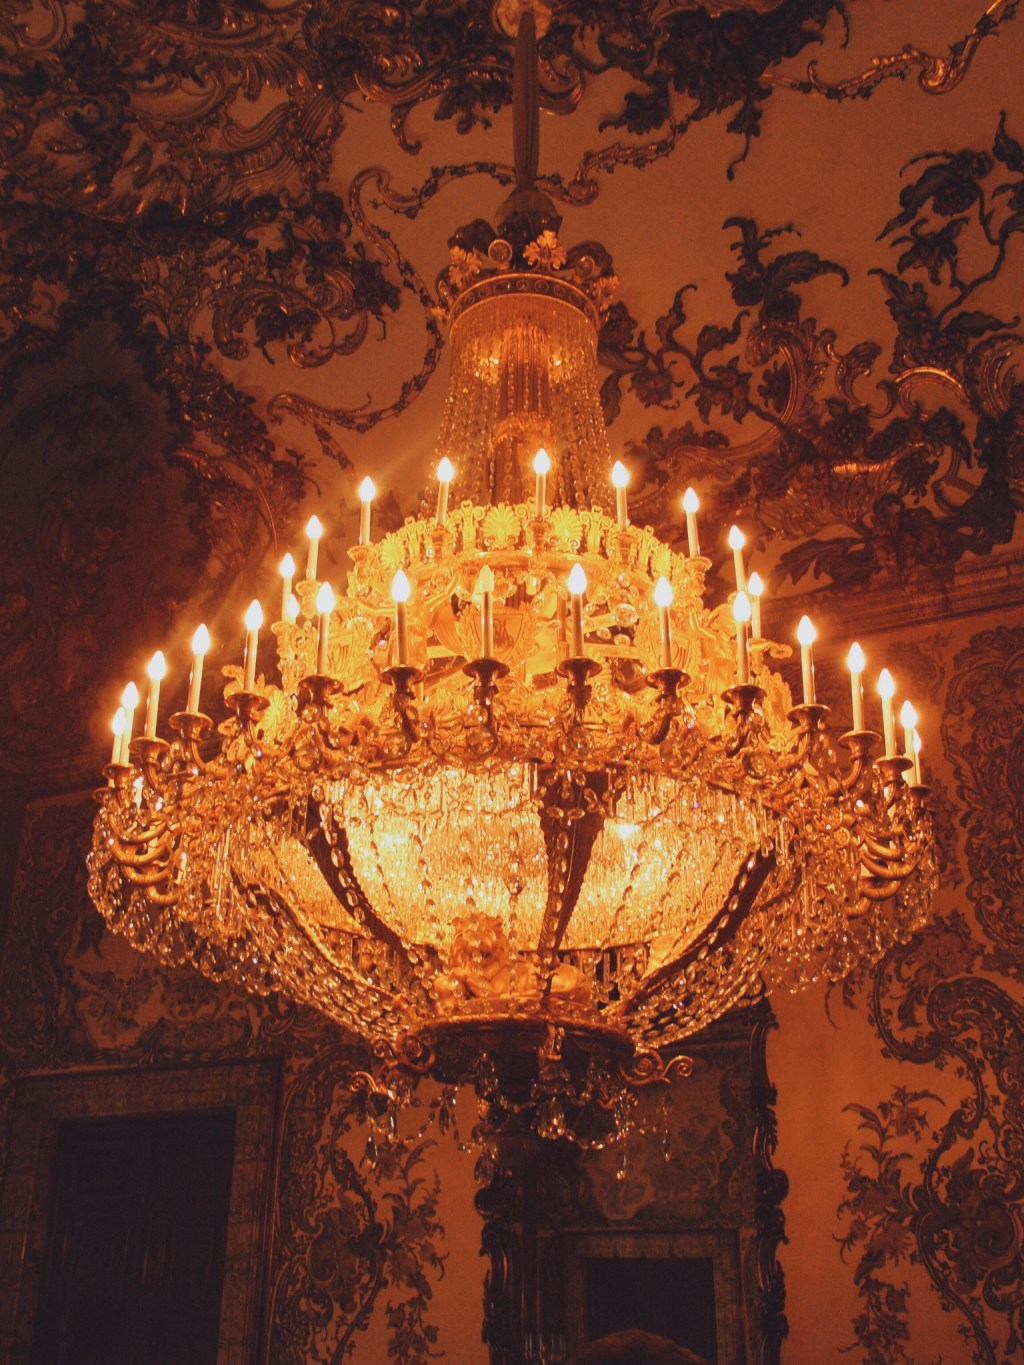 Chandelier in Palacio Real (Royal Palace) in Madrid, Spain